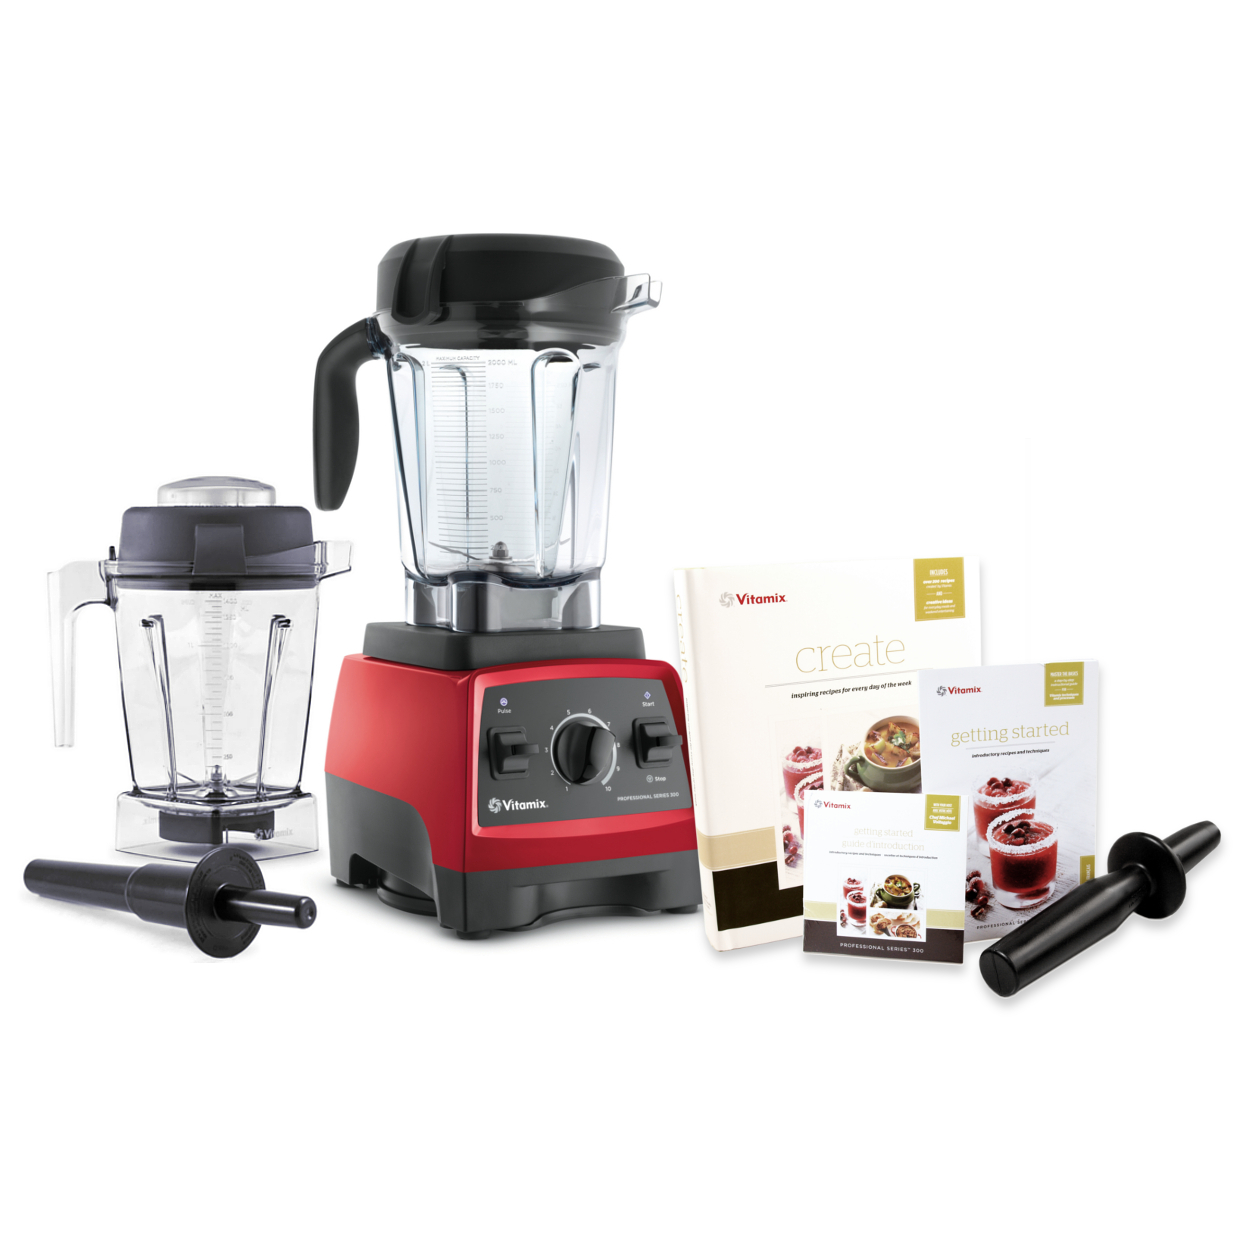 Vitamix CIA Professional Series 300 Ruby Red Blender With 64 Ounce Wet Container and 48 Ounce Wet Container